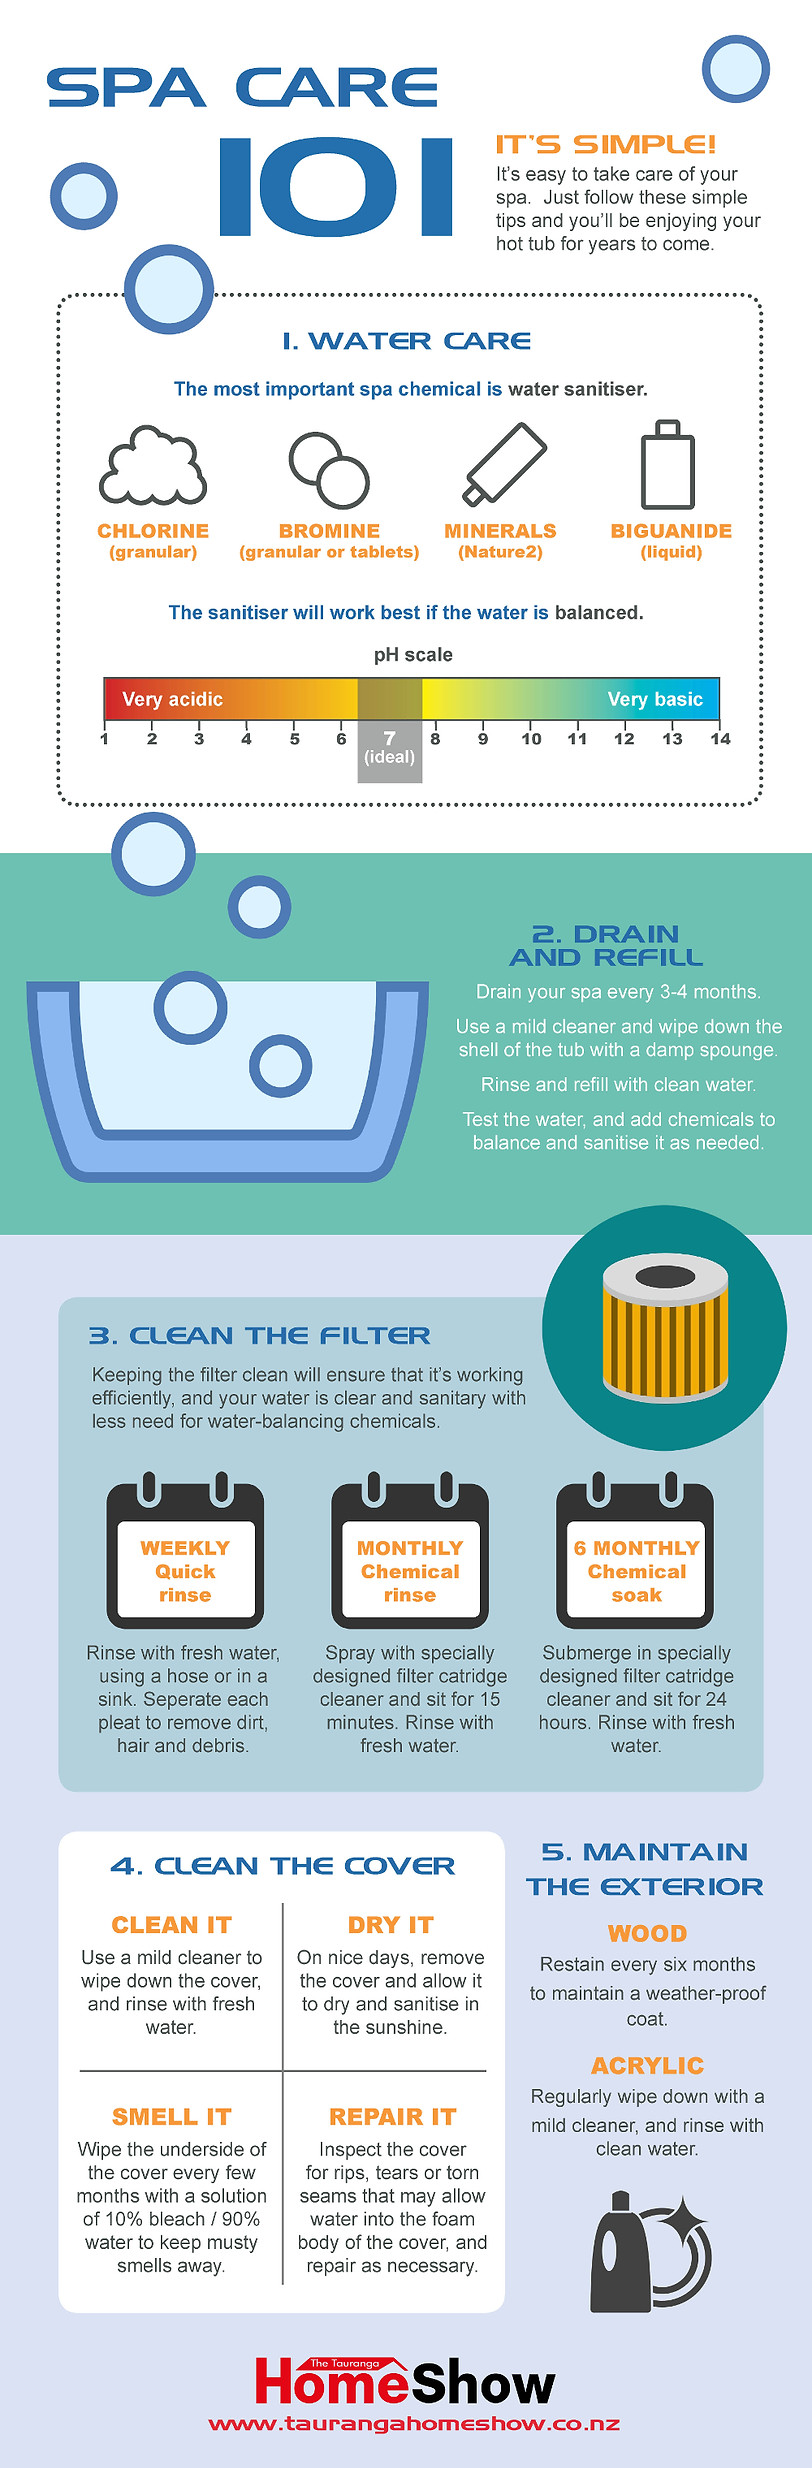 Tips for taking care of your spa / jacuzzi infographic